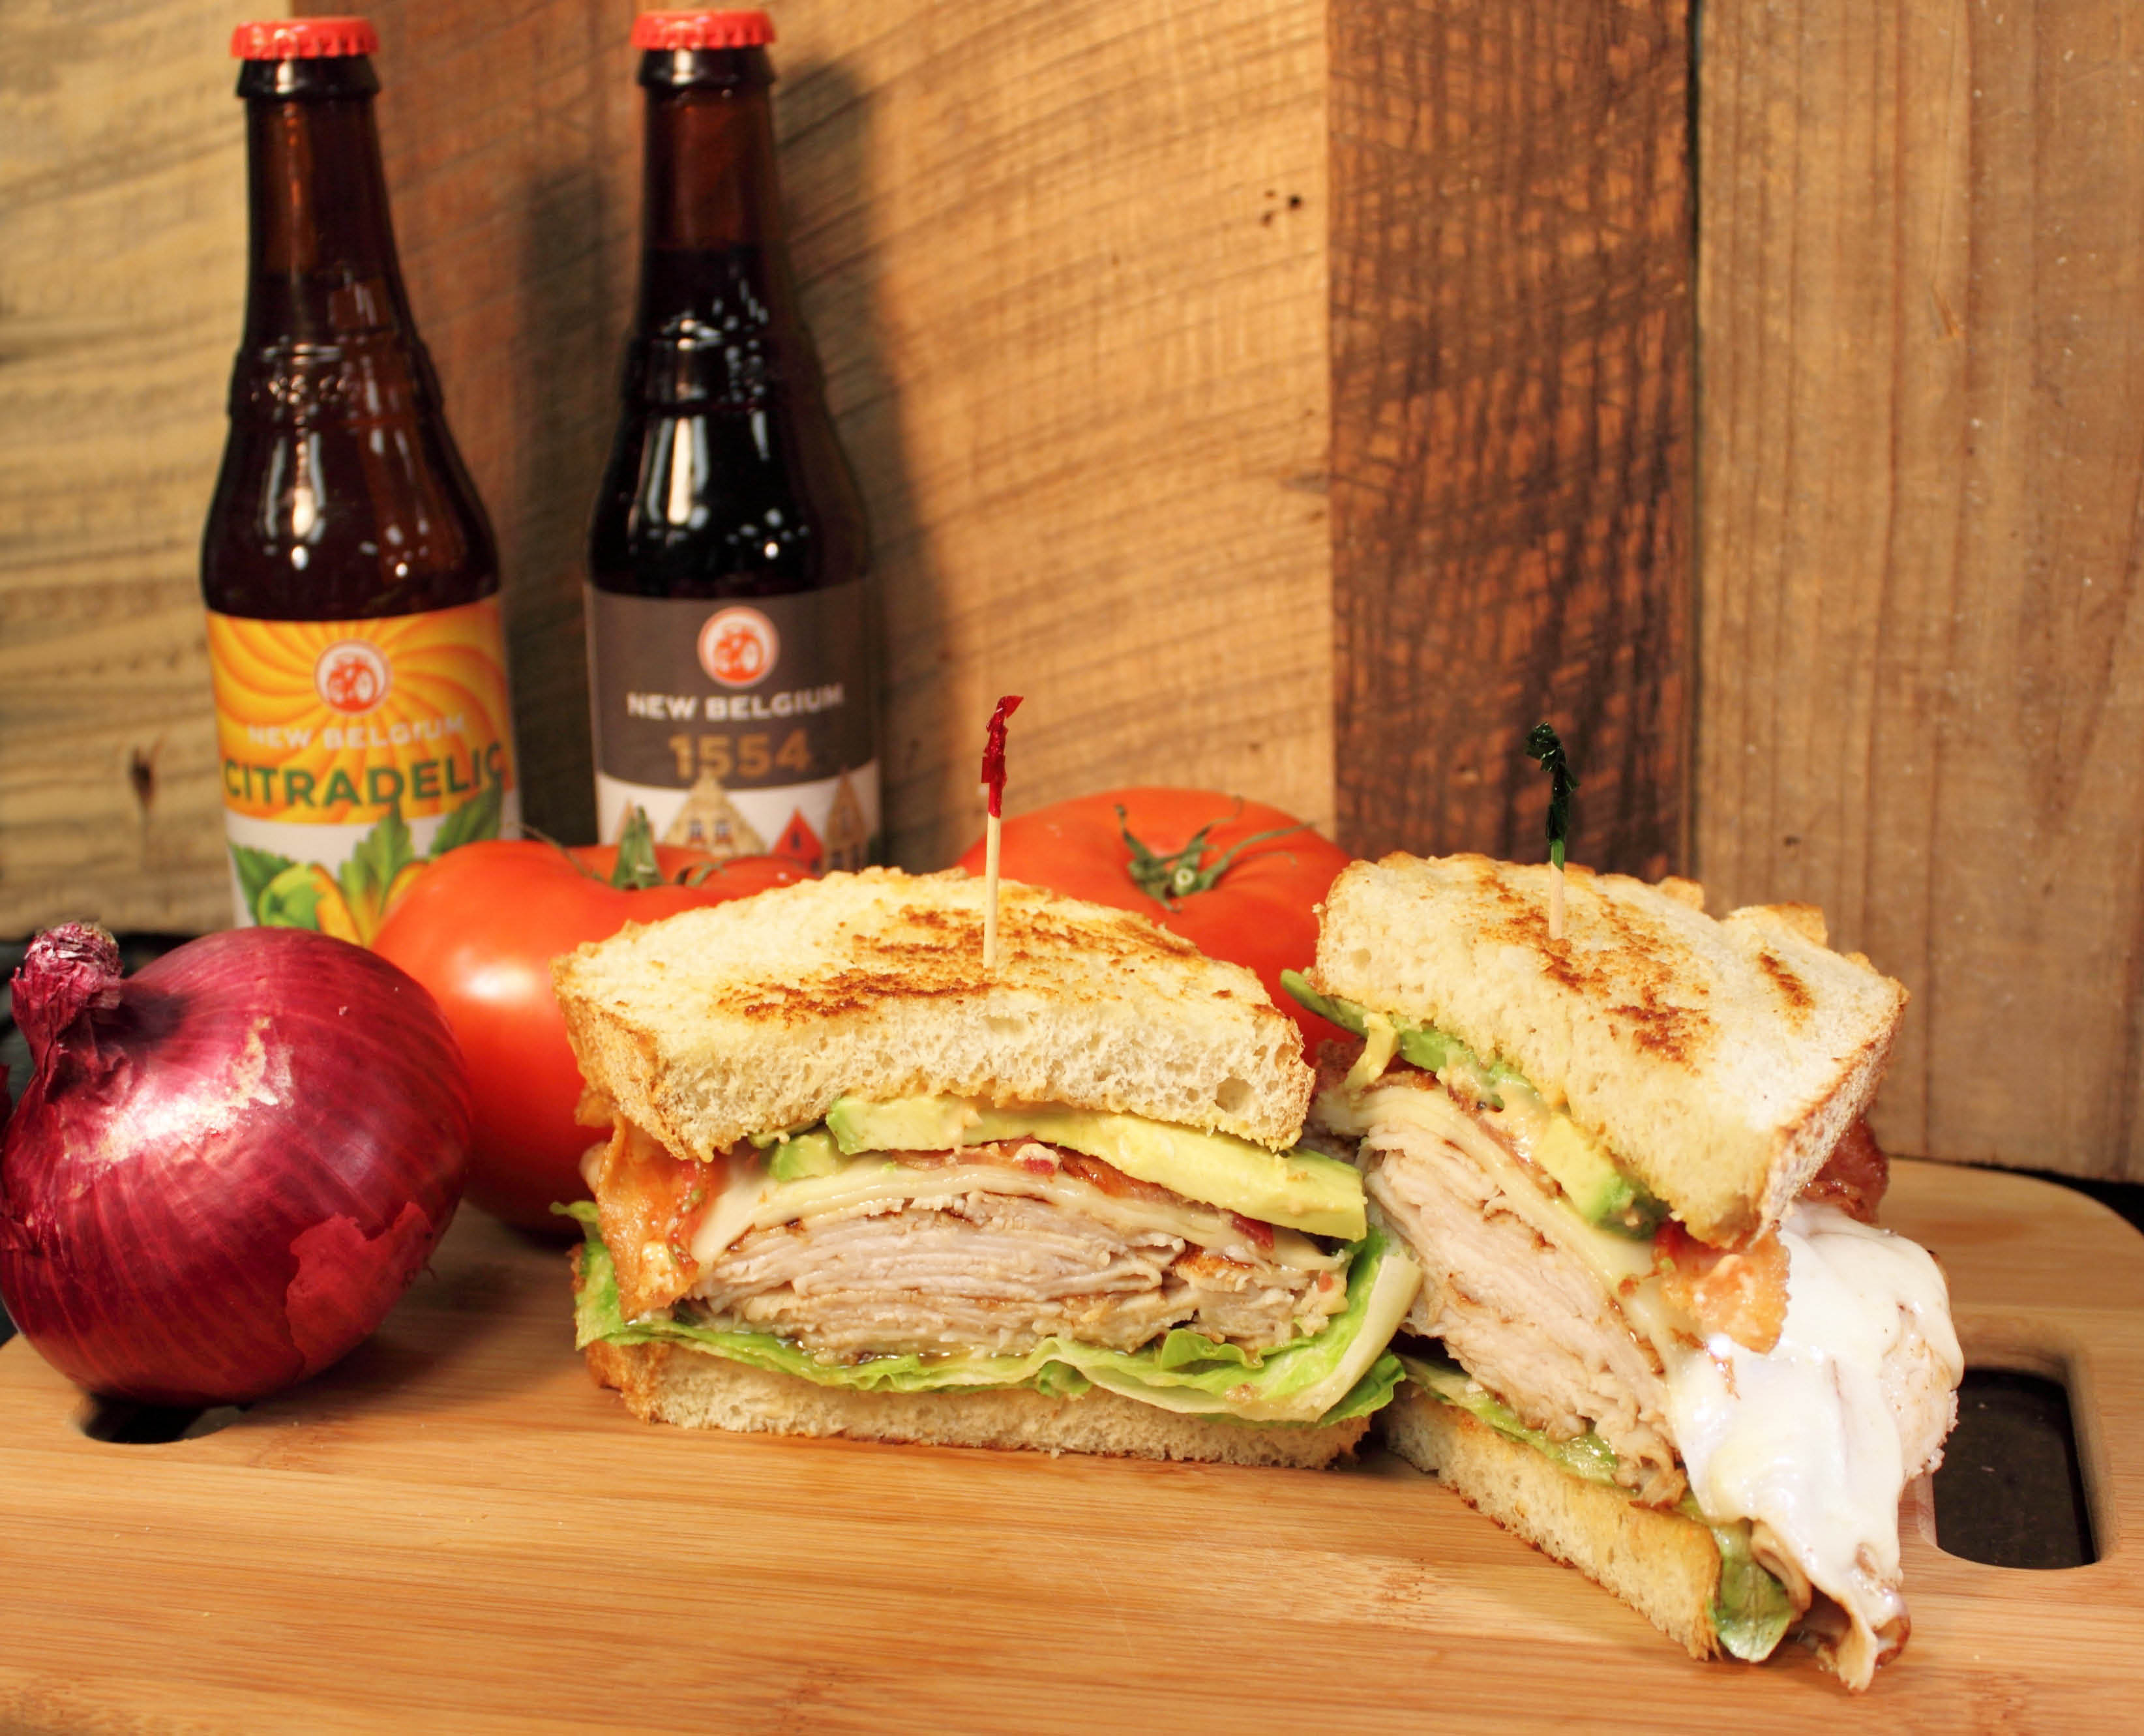 Mason Jar Brews & Burgers Turkey Melt With Bottled Craft Beers